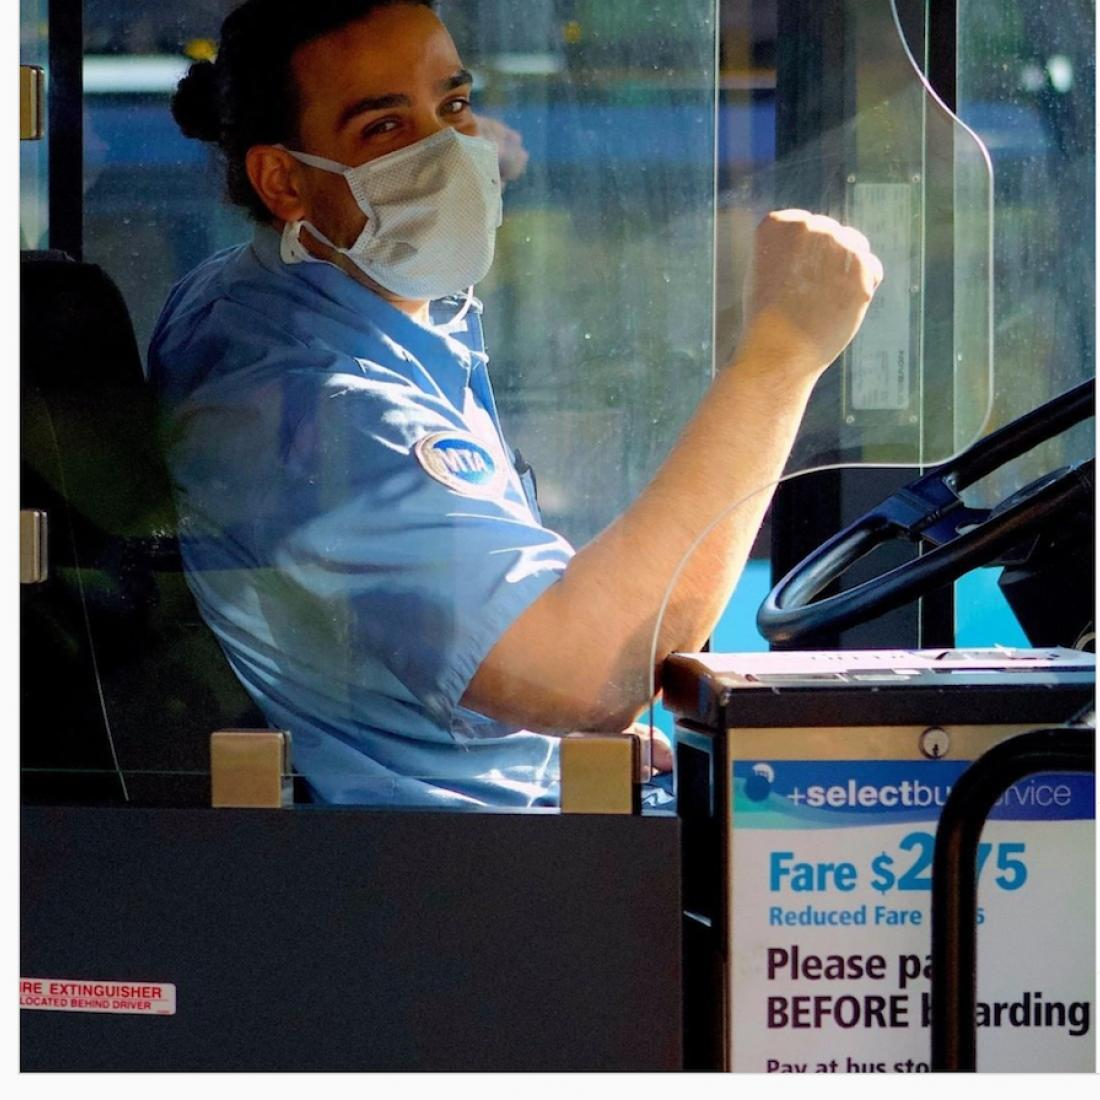 A bus driver wearing a mask sits at the wheel of a bus with his fist slightly raised.